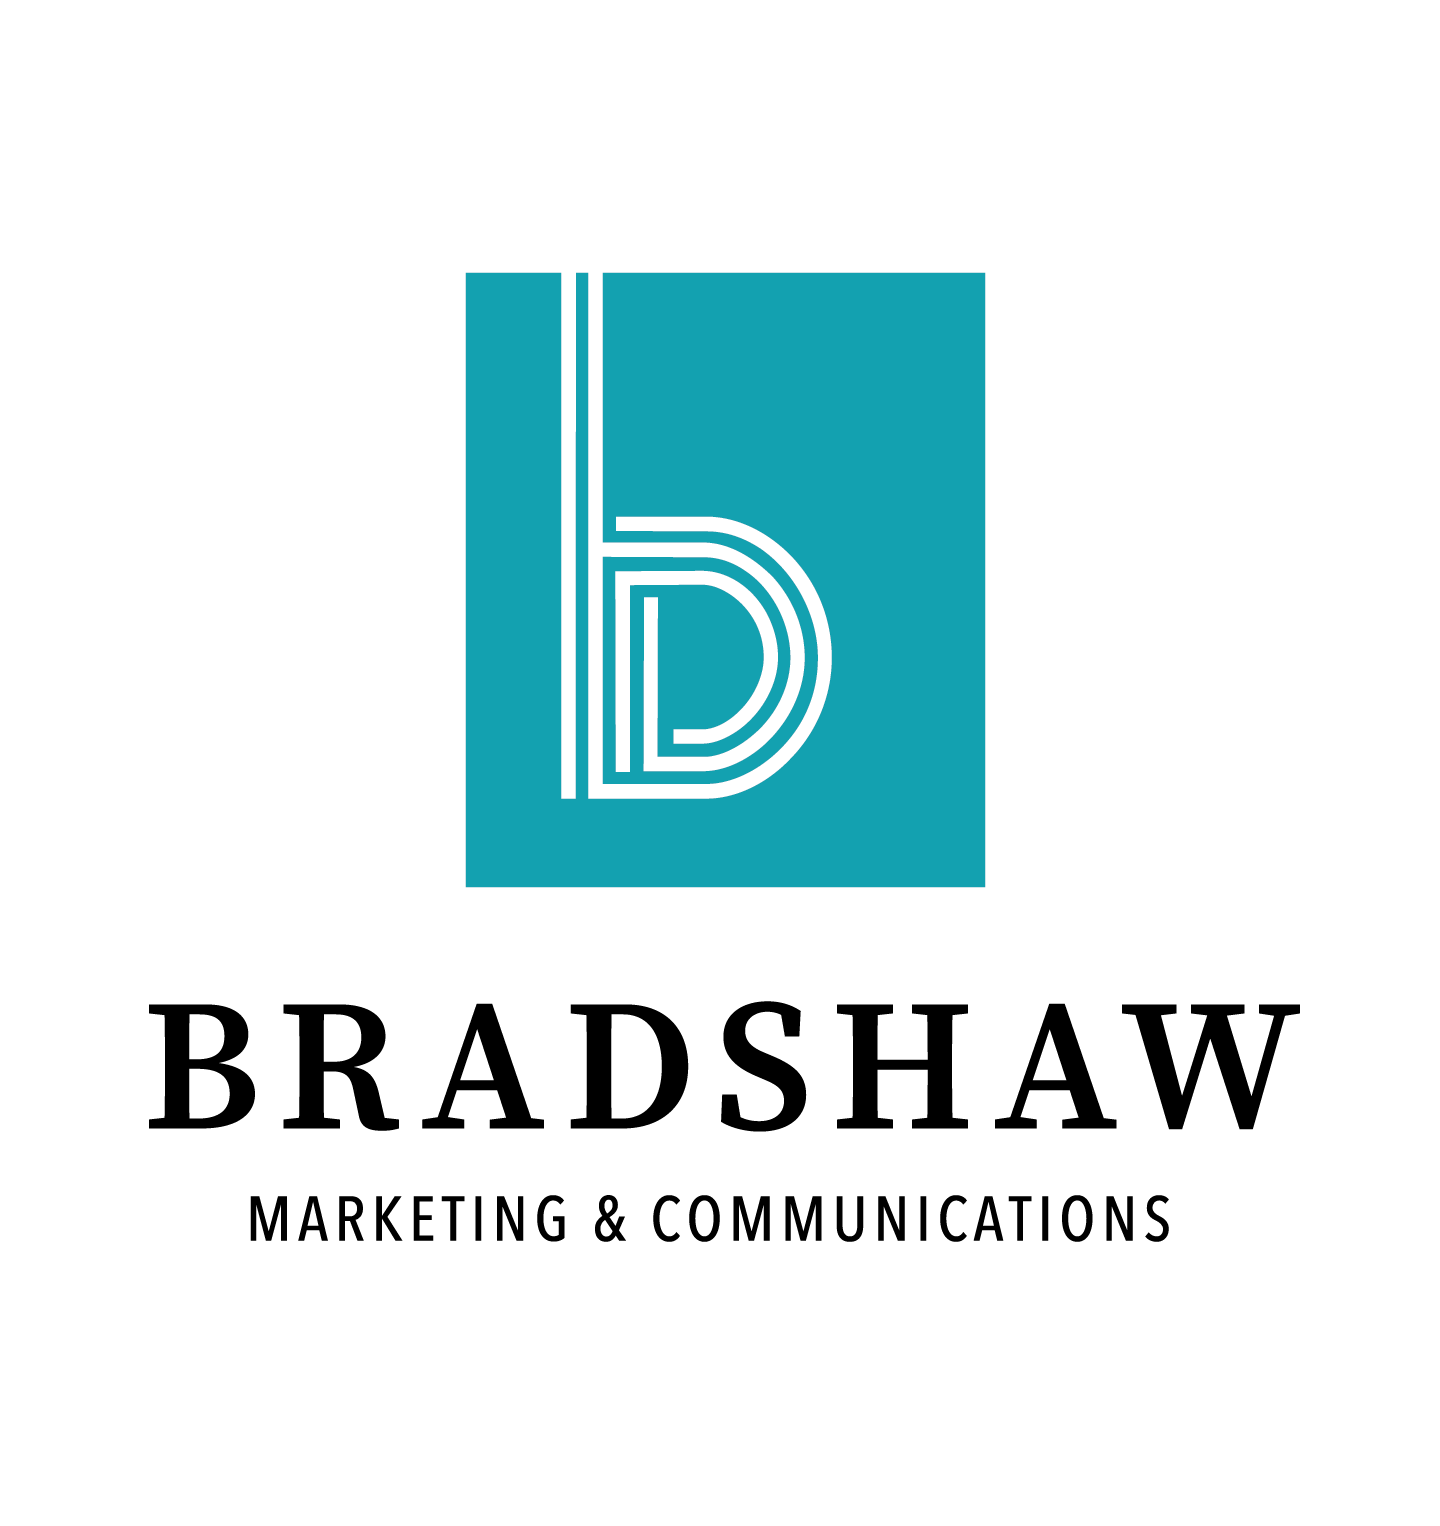 Bradshaw Marketing & Communications